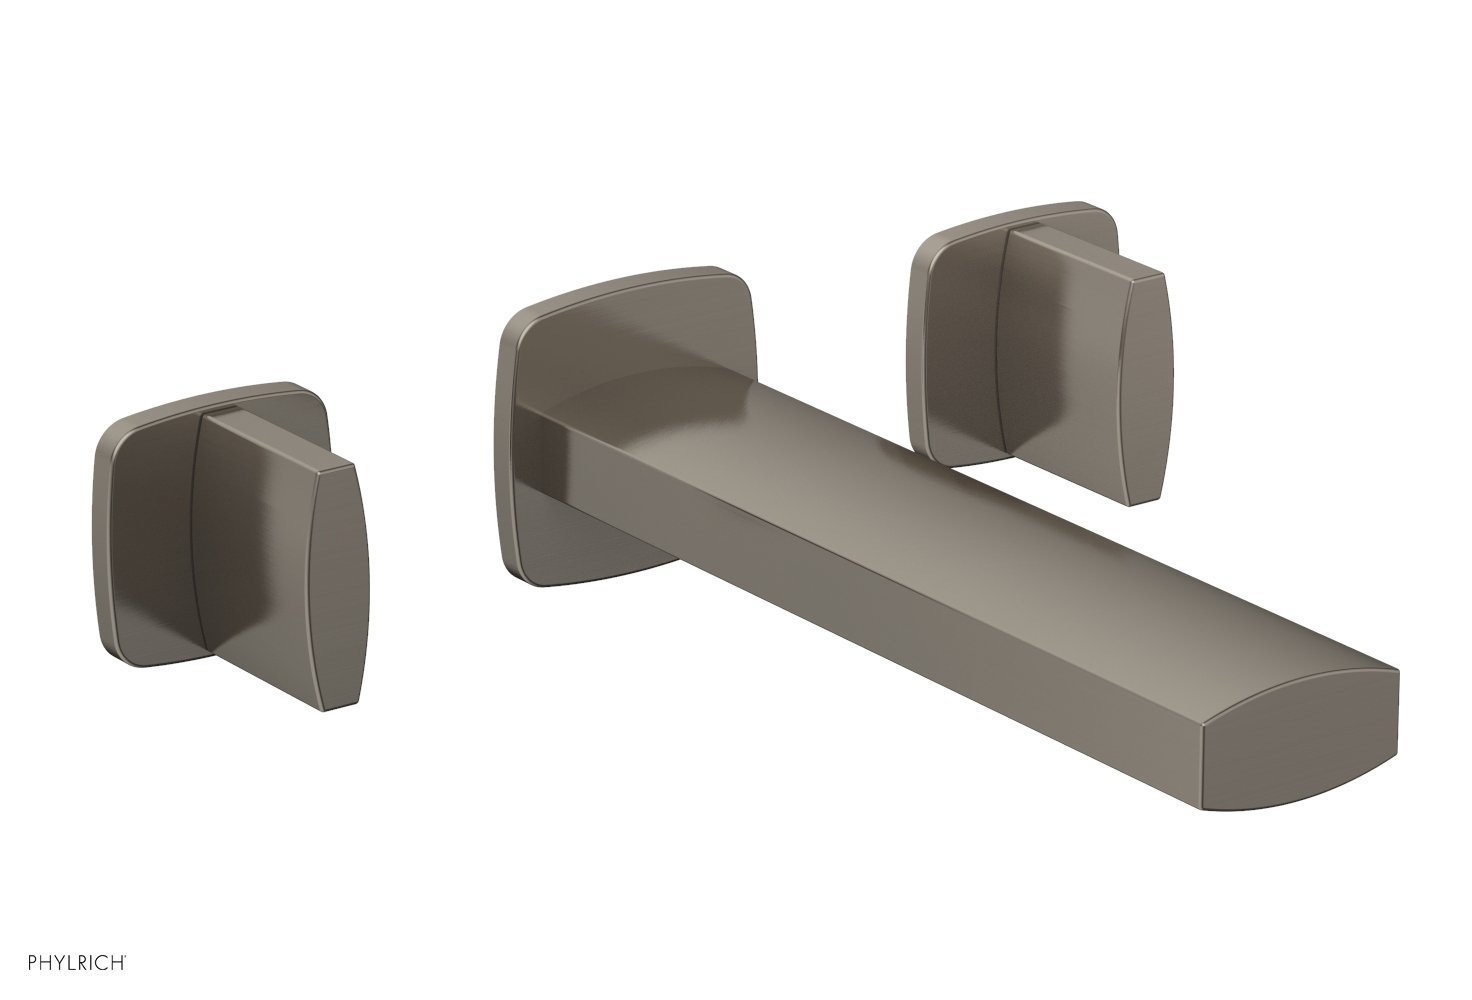 Phylrich 181-11-15A RADI Wall Lavatory Set - Blade Handles - Pewter